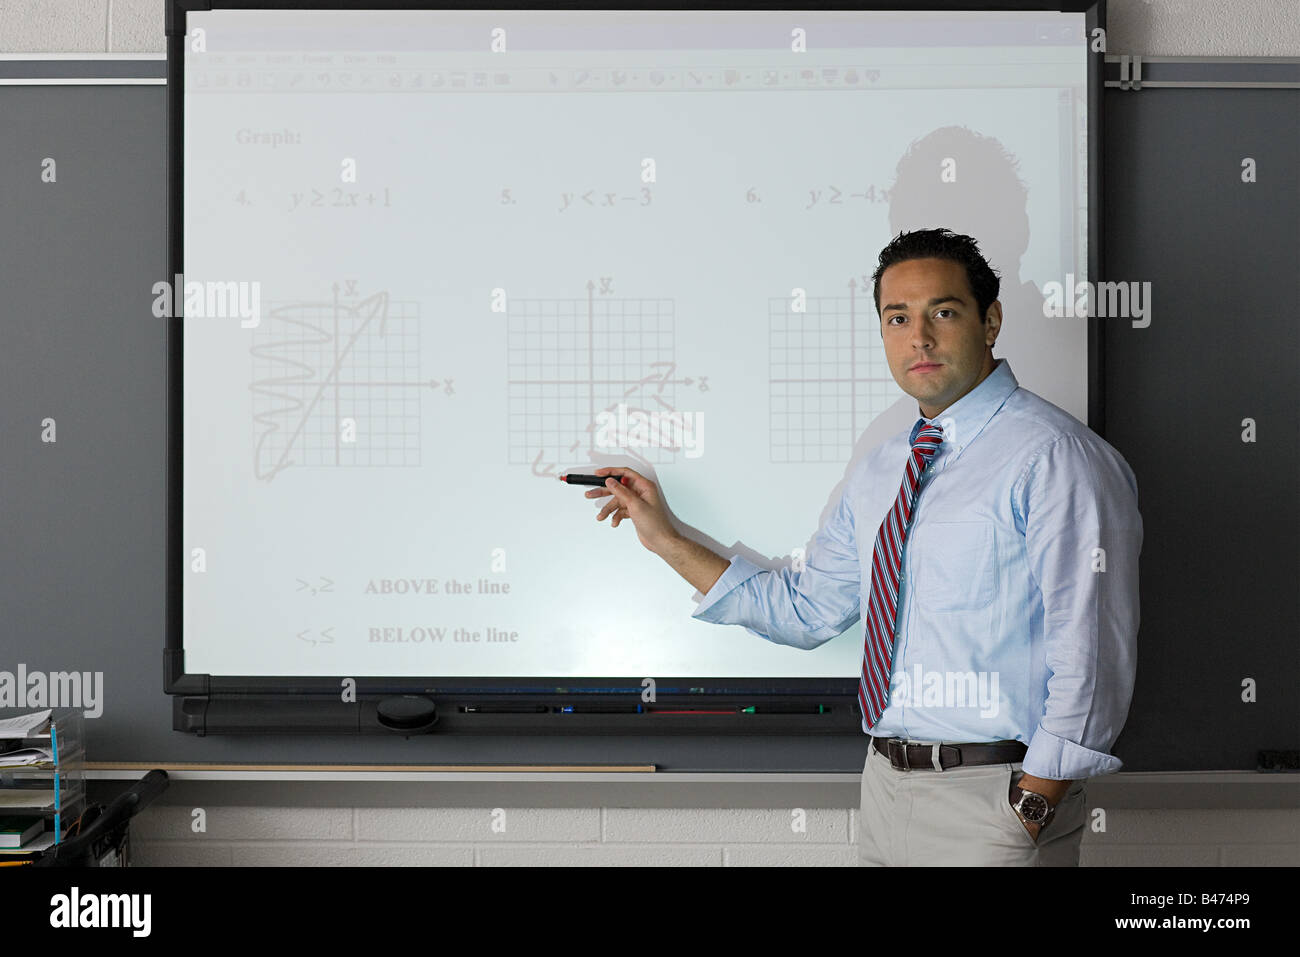 A teacher pointing at a projector screen - Stock Image